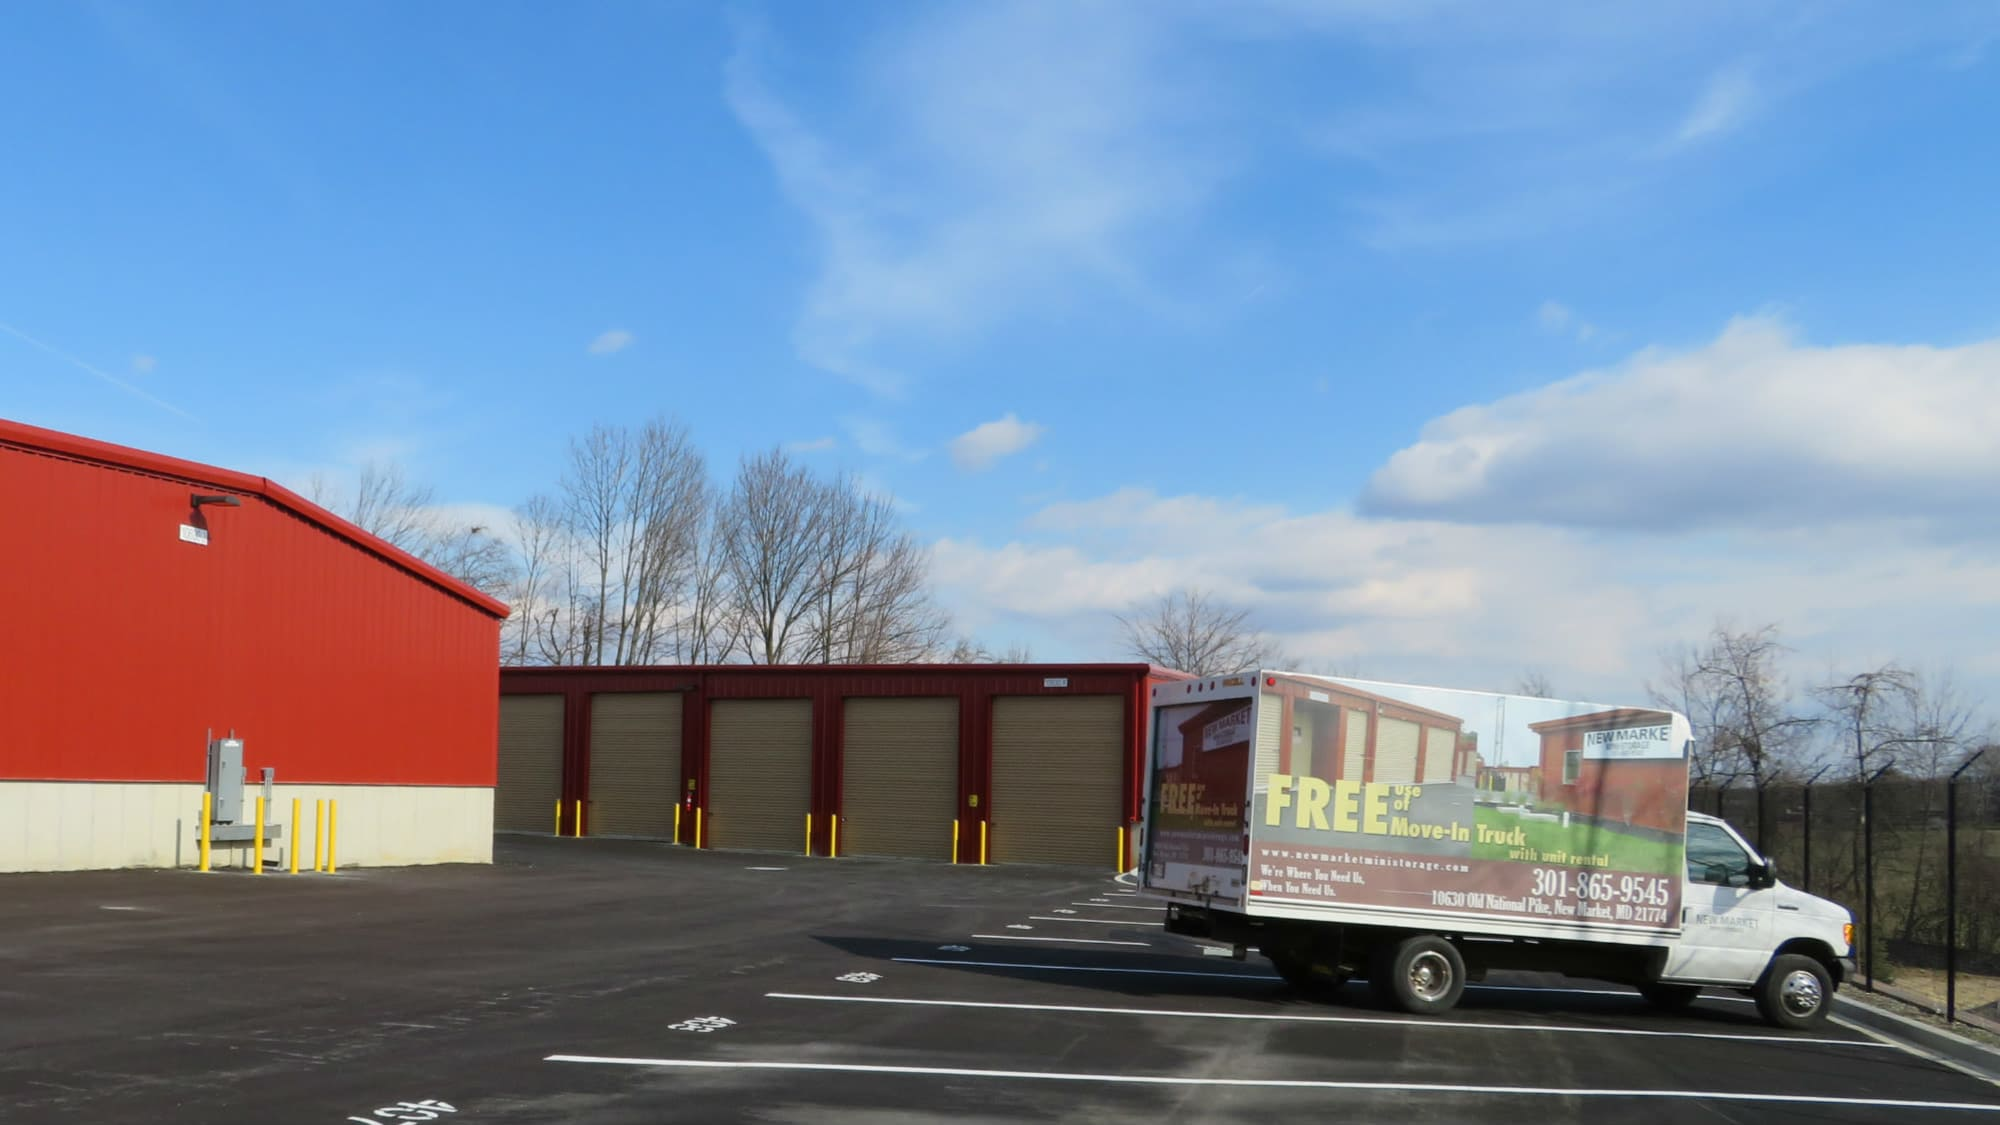 Moving truck at New Market Mini Storage in New Market, Maryland